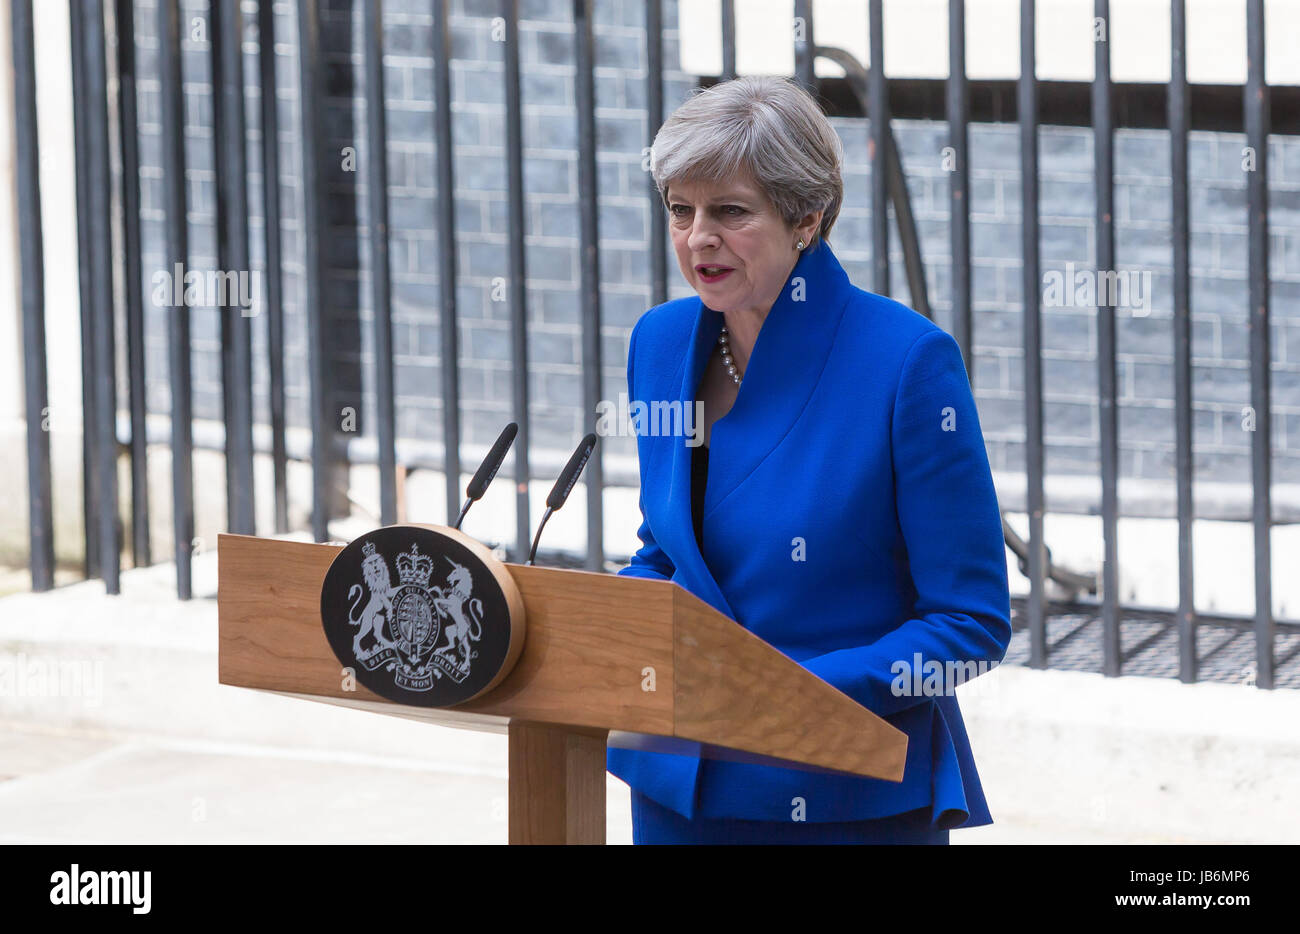 London, UK. 9th June, 2017. British Prime Minister Theresa May gives a speech at 10 Downing Street after meeting - Stock Image